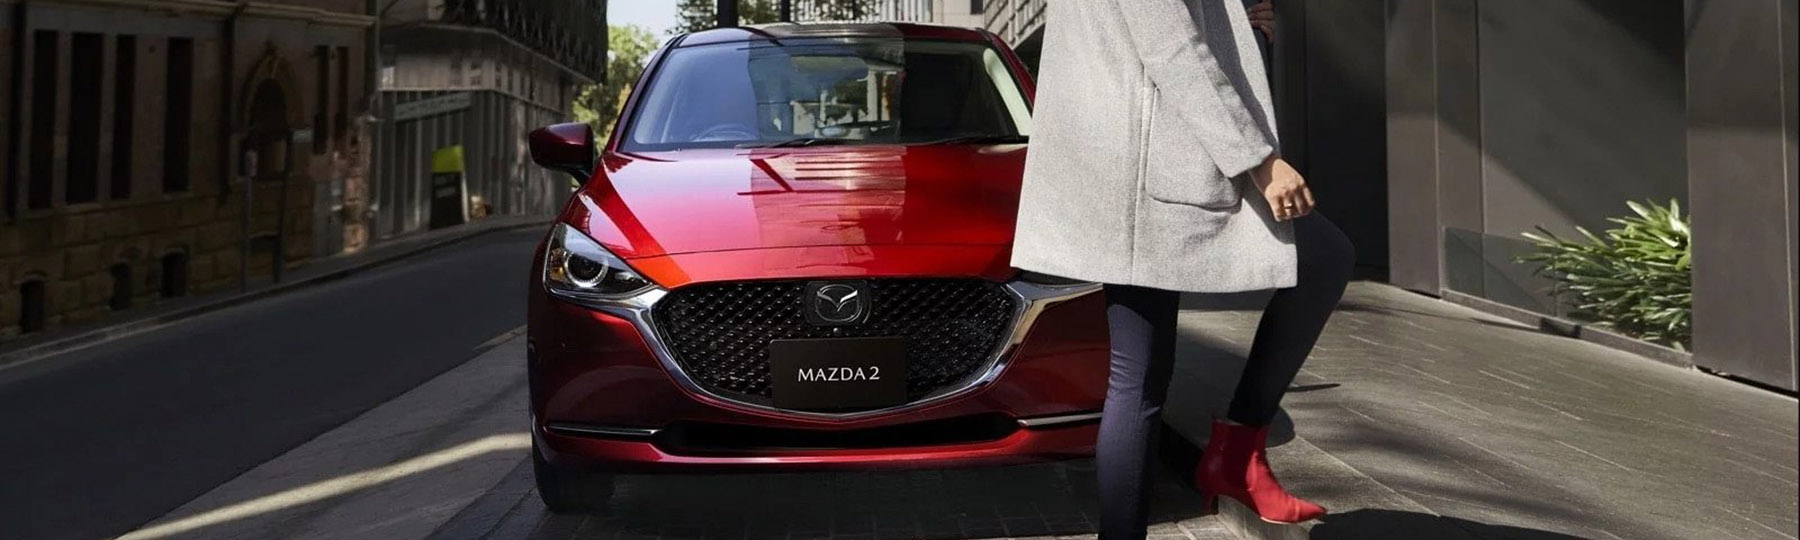 Mazda Approved Finance